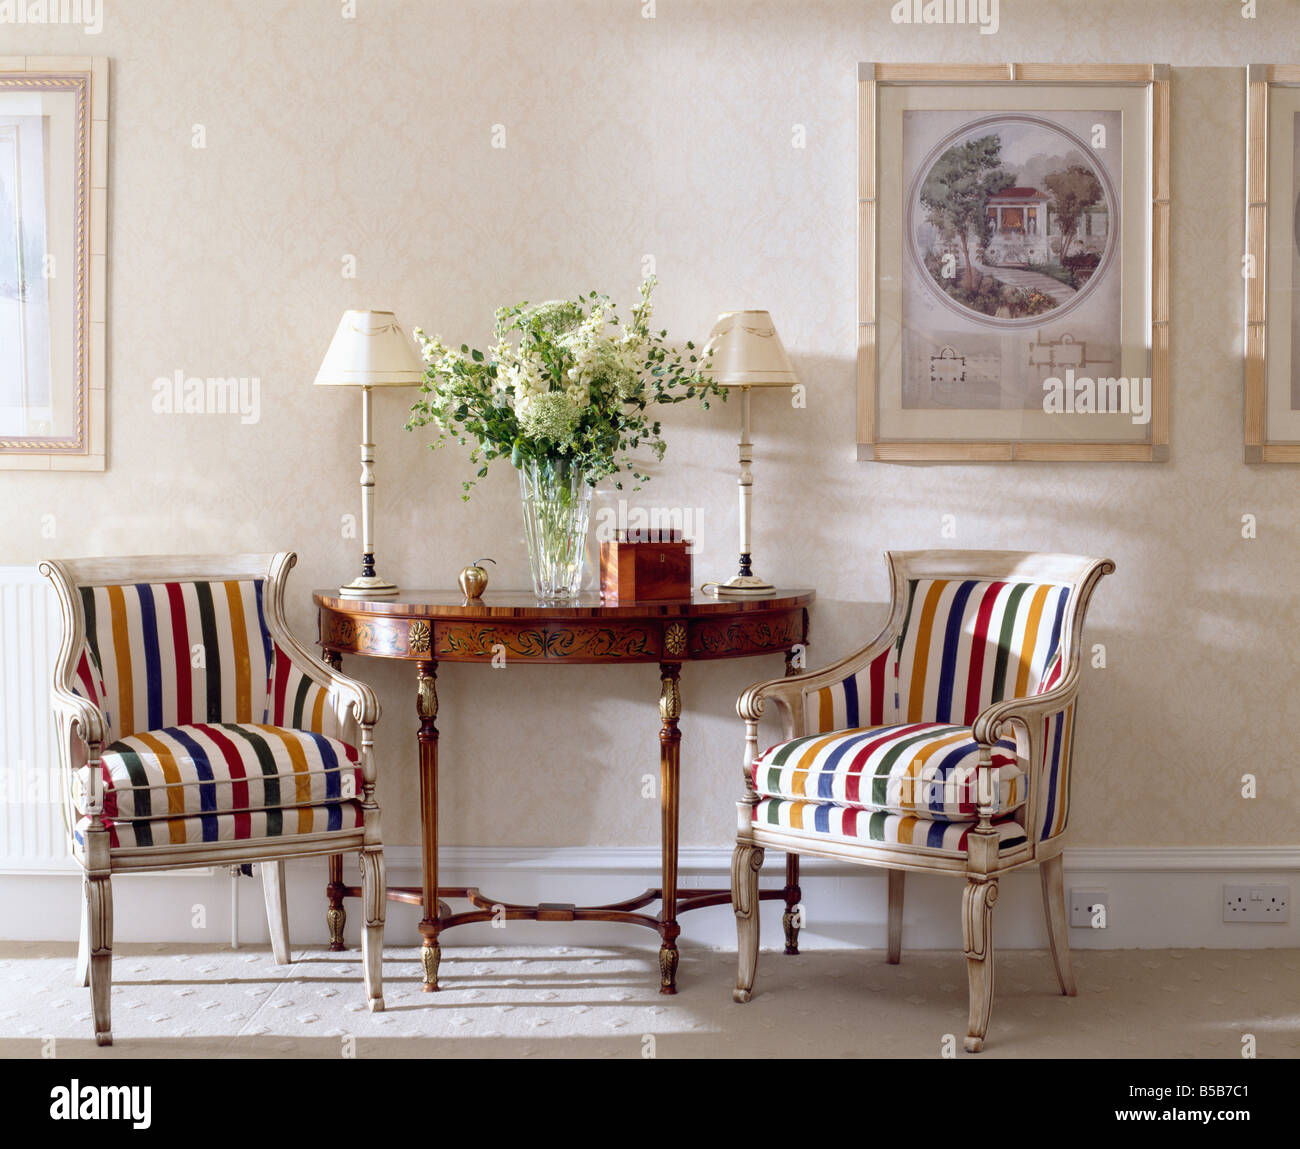 Marvelous Multi Coloured Striped Upholstered Chairs On Either Side Of Antique Console  Table In Traditional Cream Hall